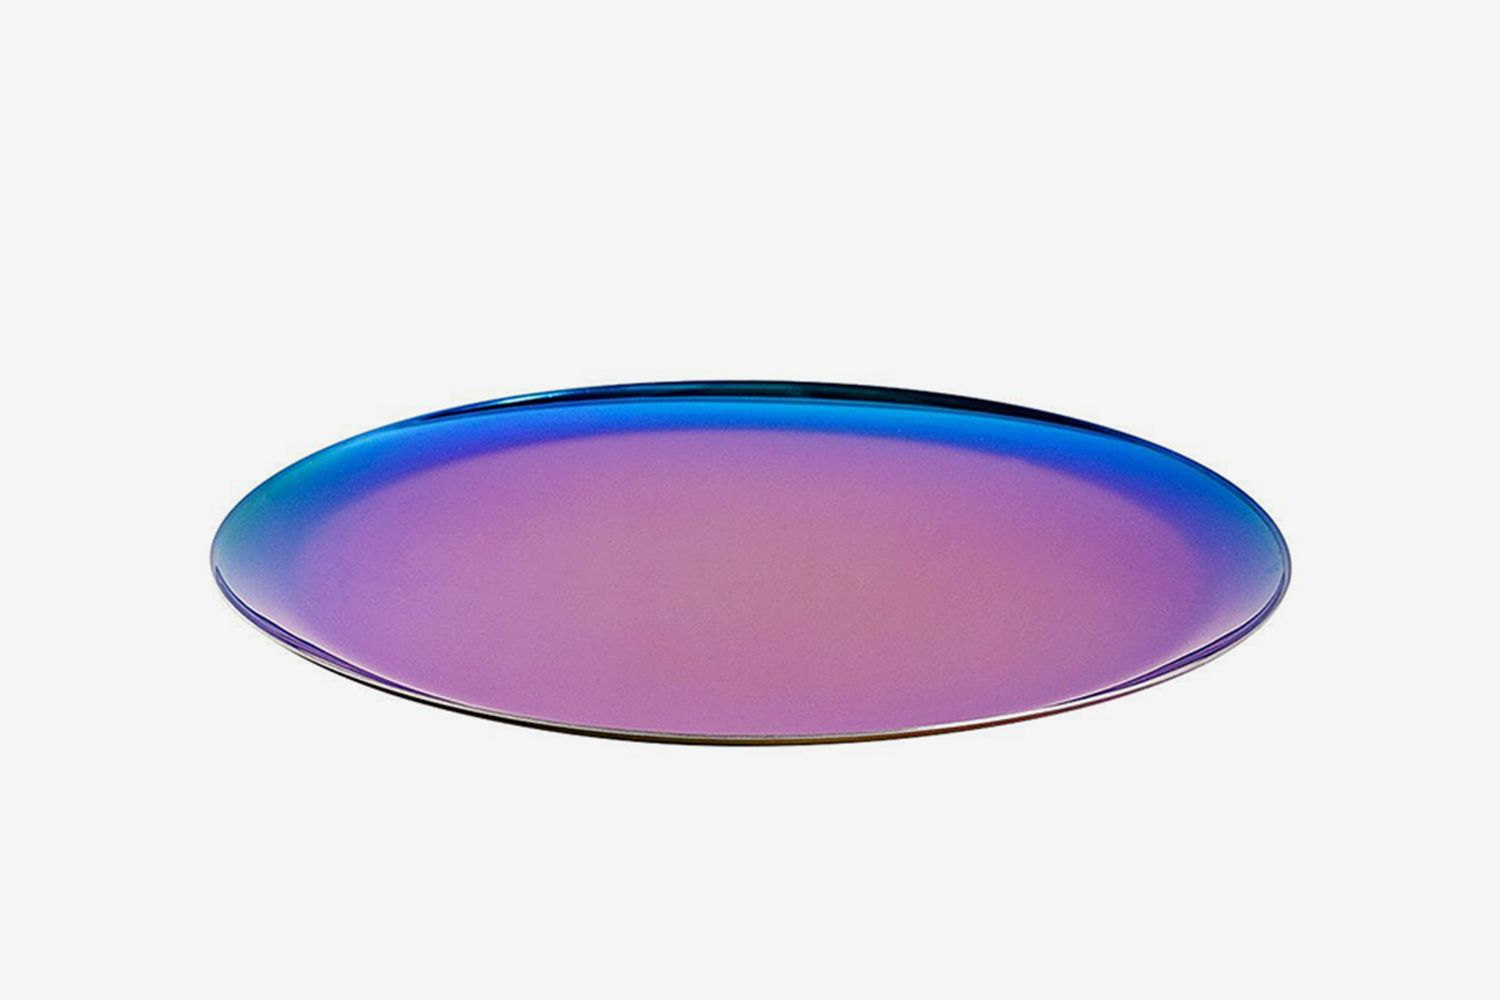 Rainbow Stainless Steel Serving Tray